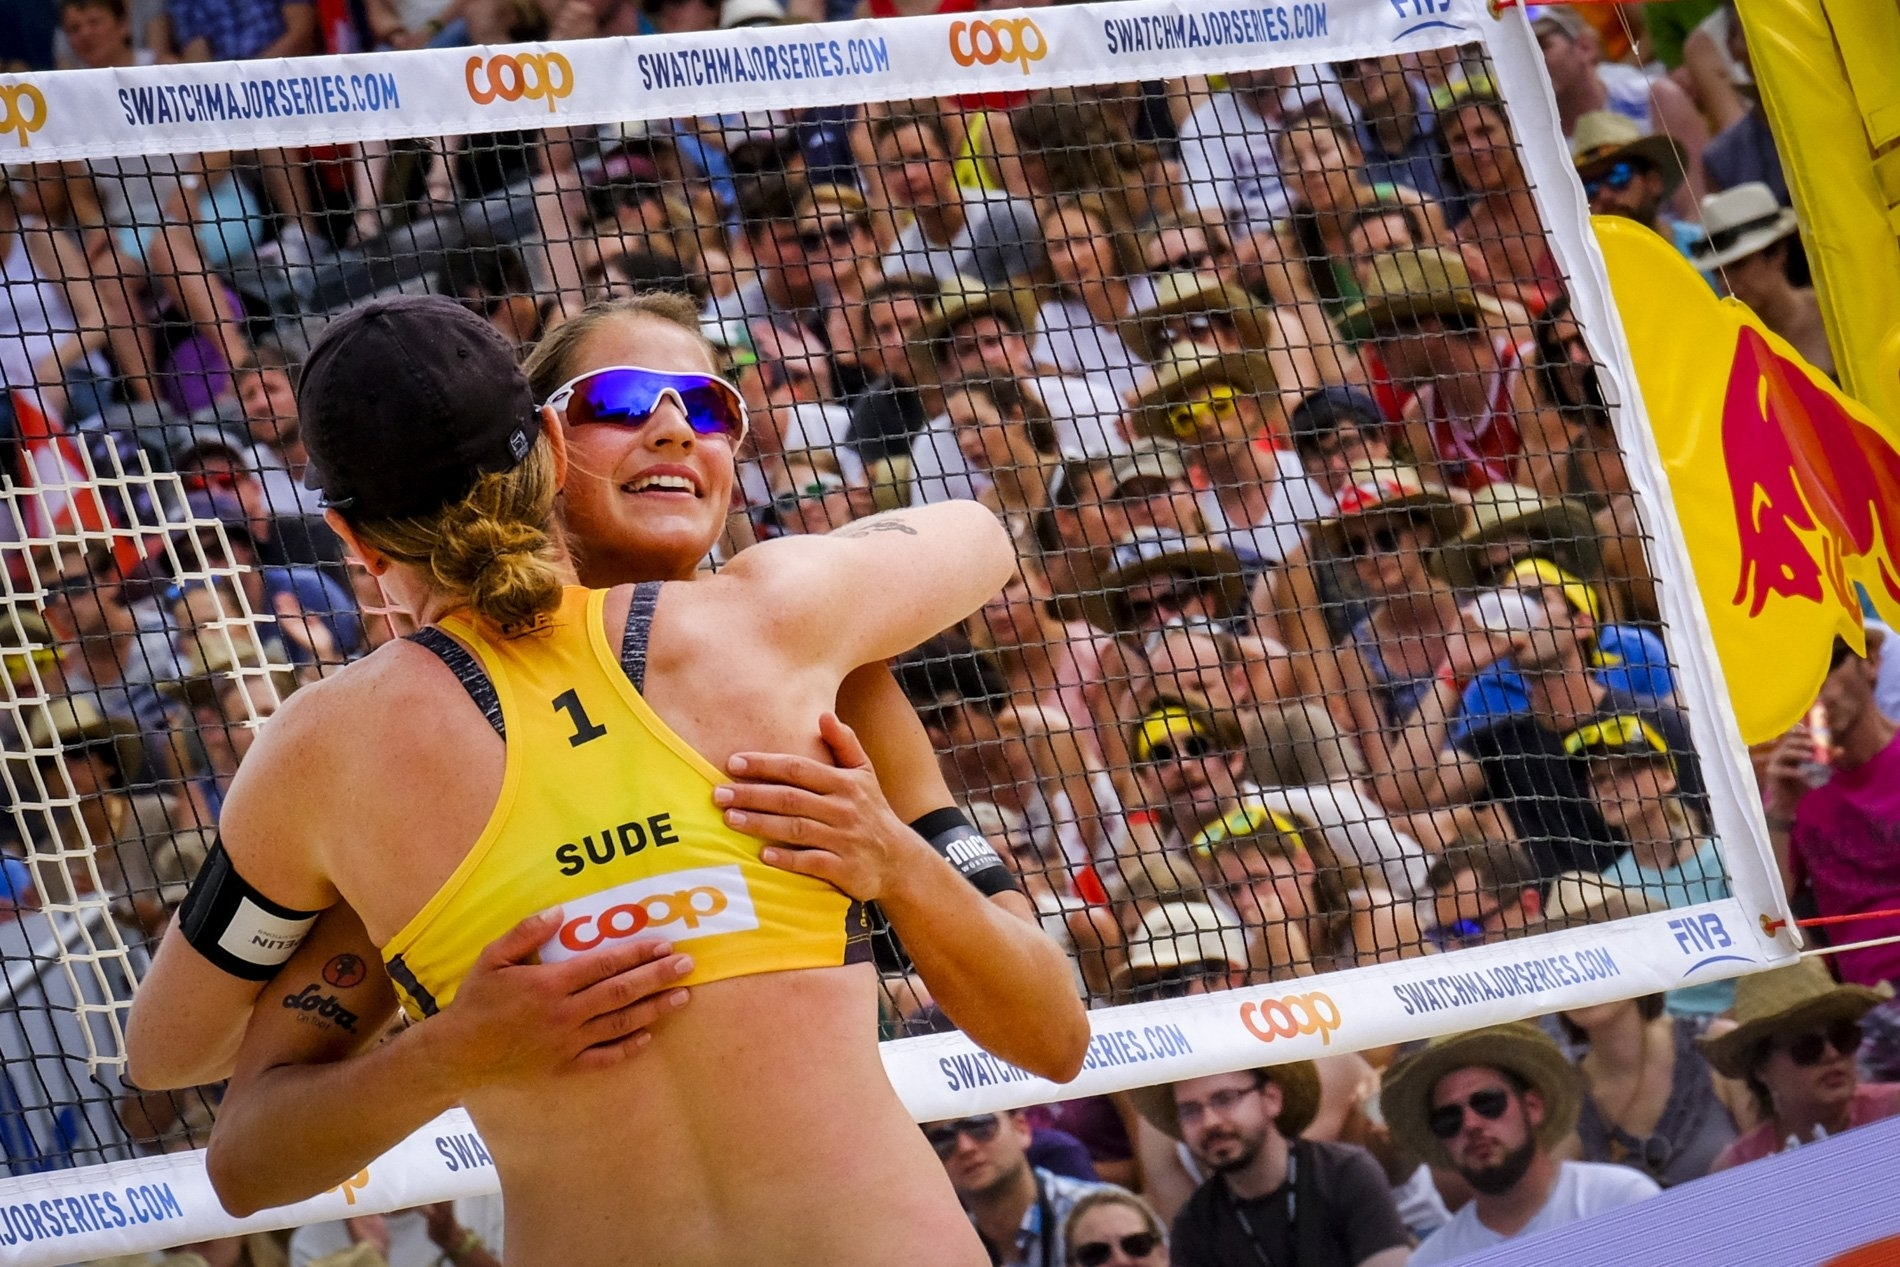 Laboureur/Sude celebrate clinching Gstaad Major gold